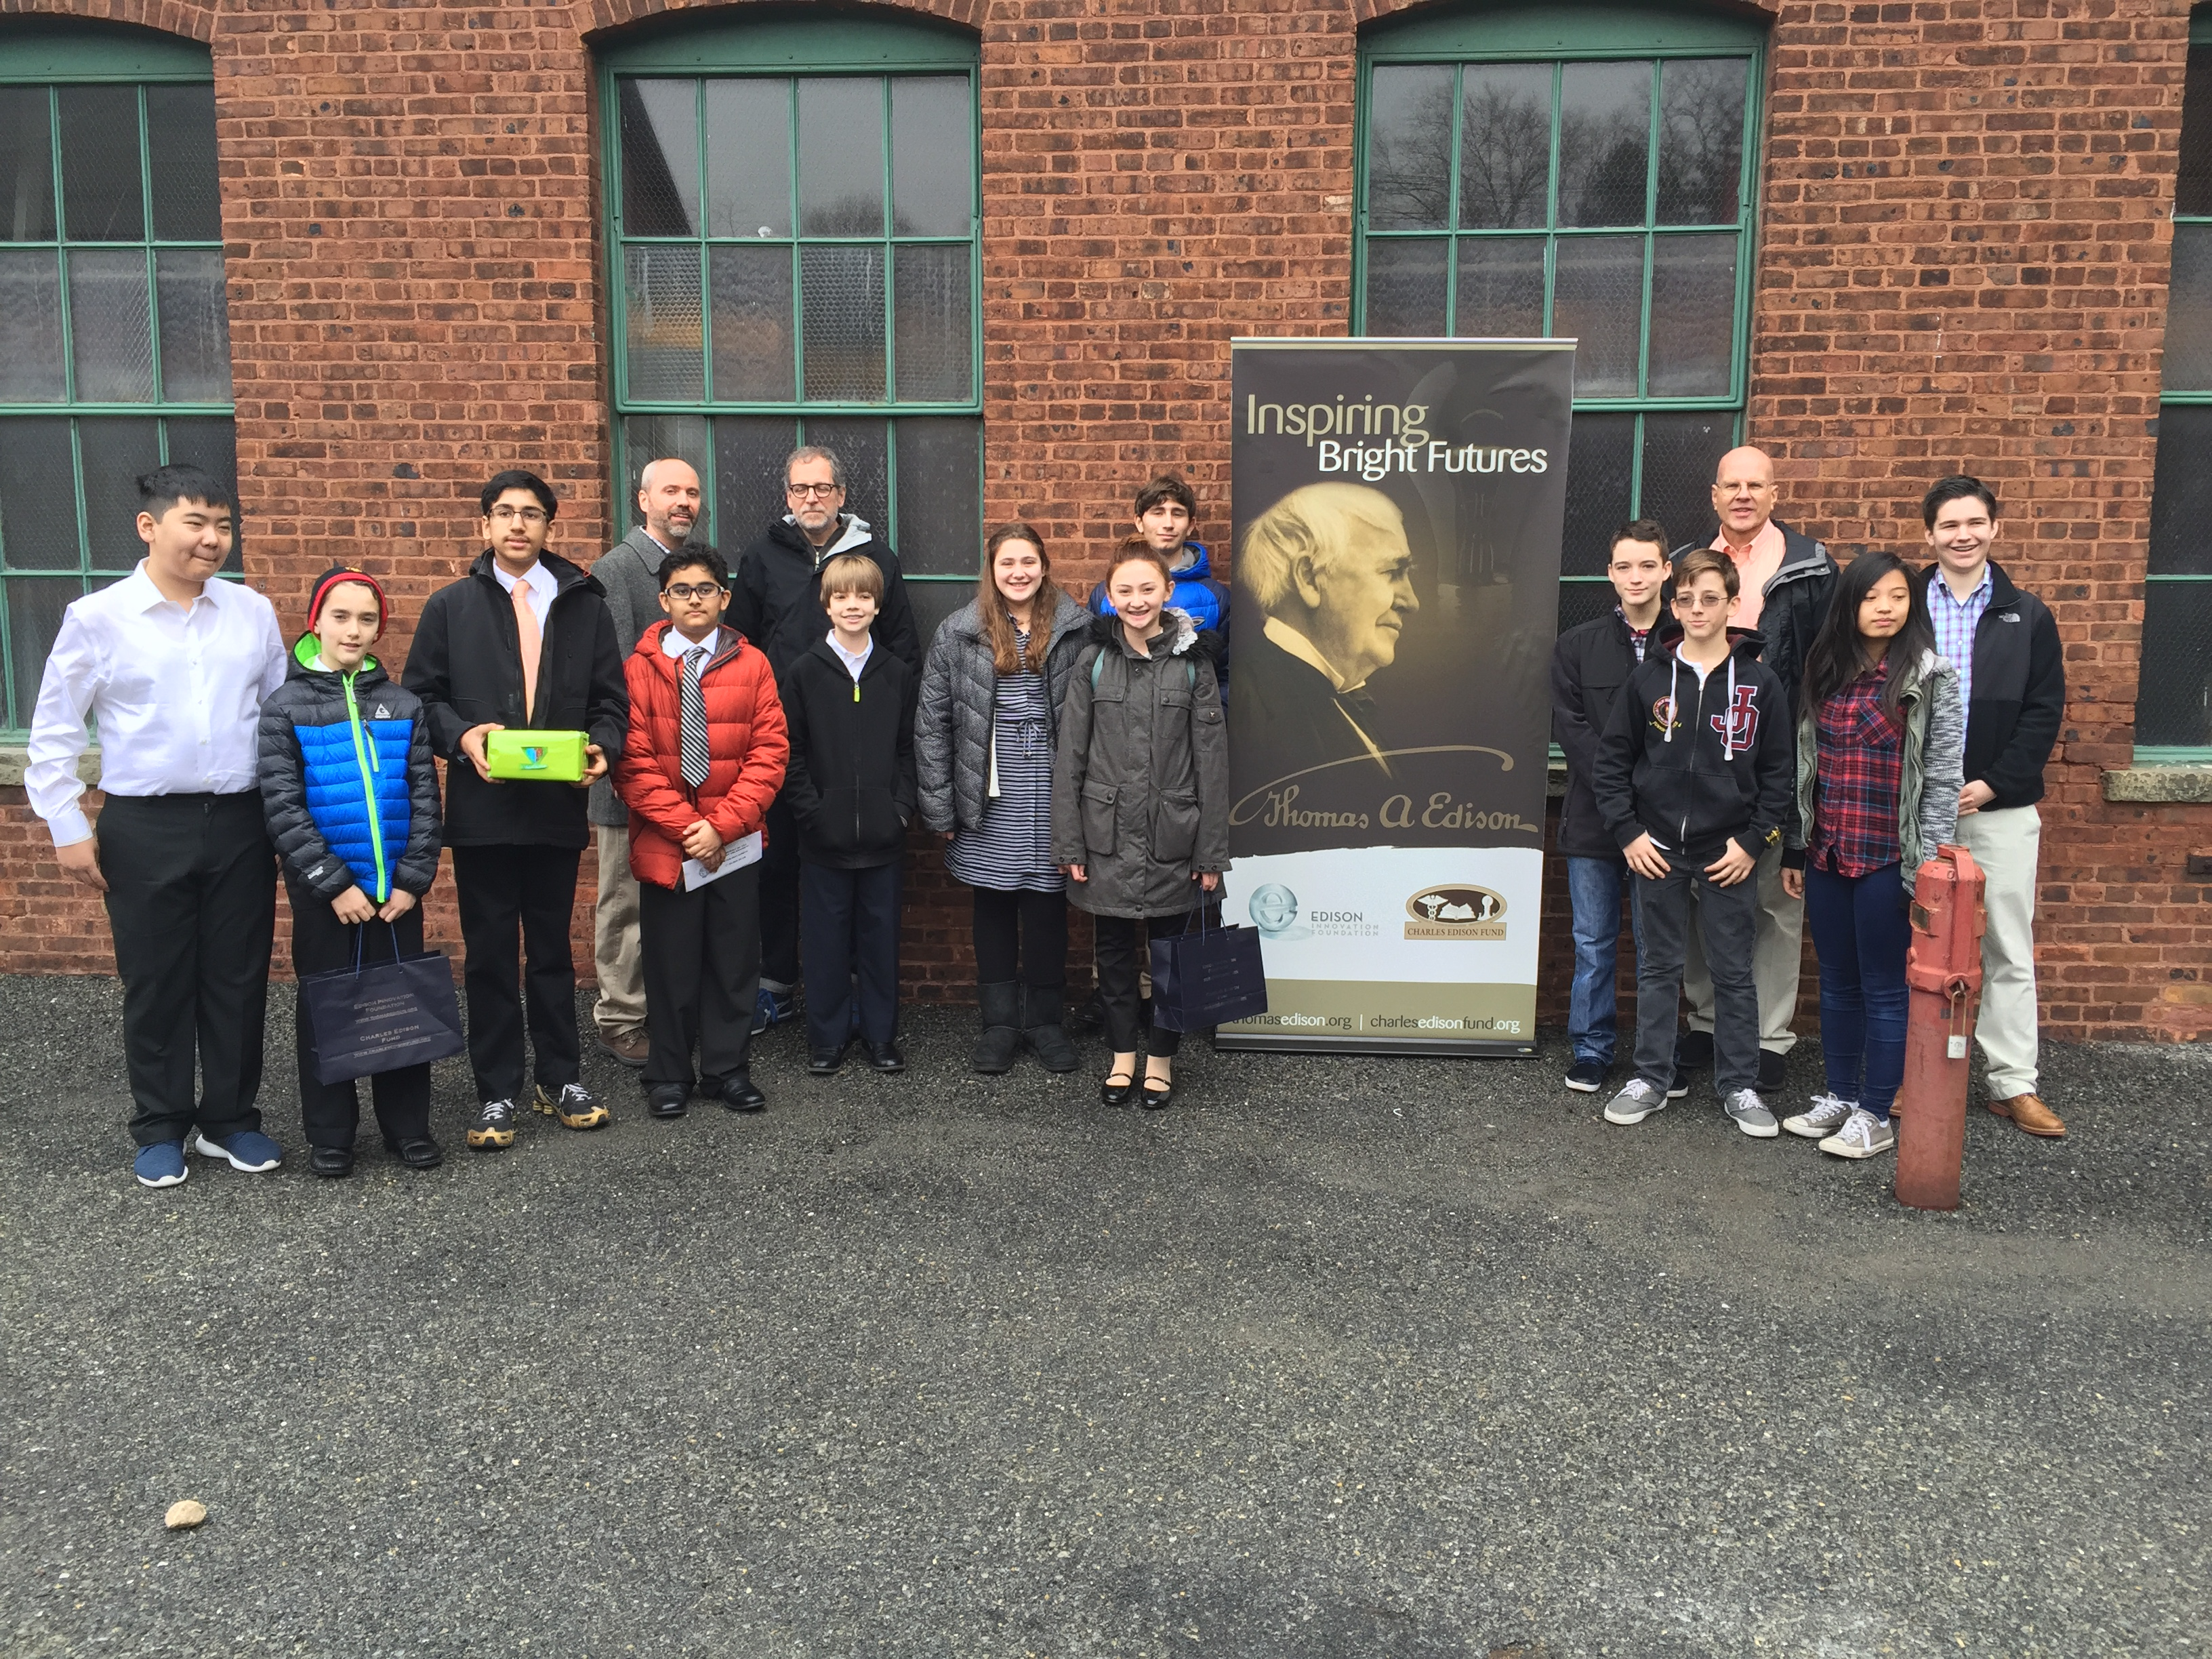 The three finalist teams and their teacher mentors enjoying a group photo at the Thomas Edison National Historical Park where the contest finals were held.